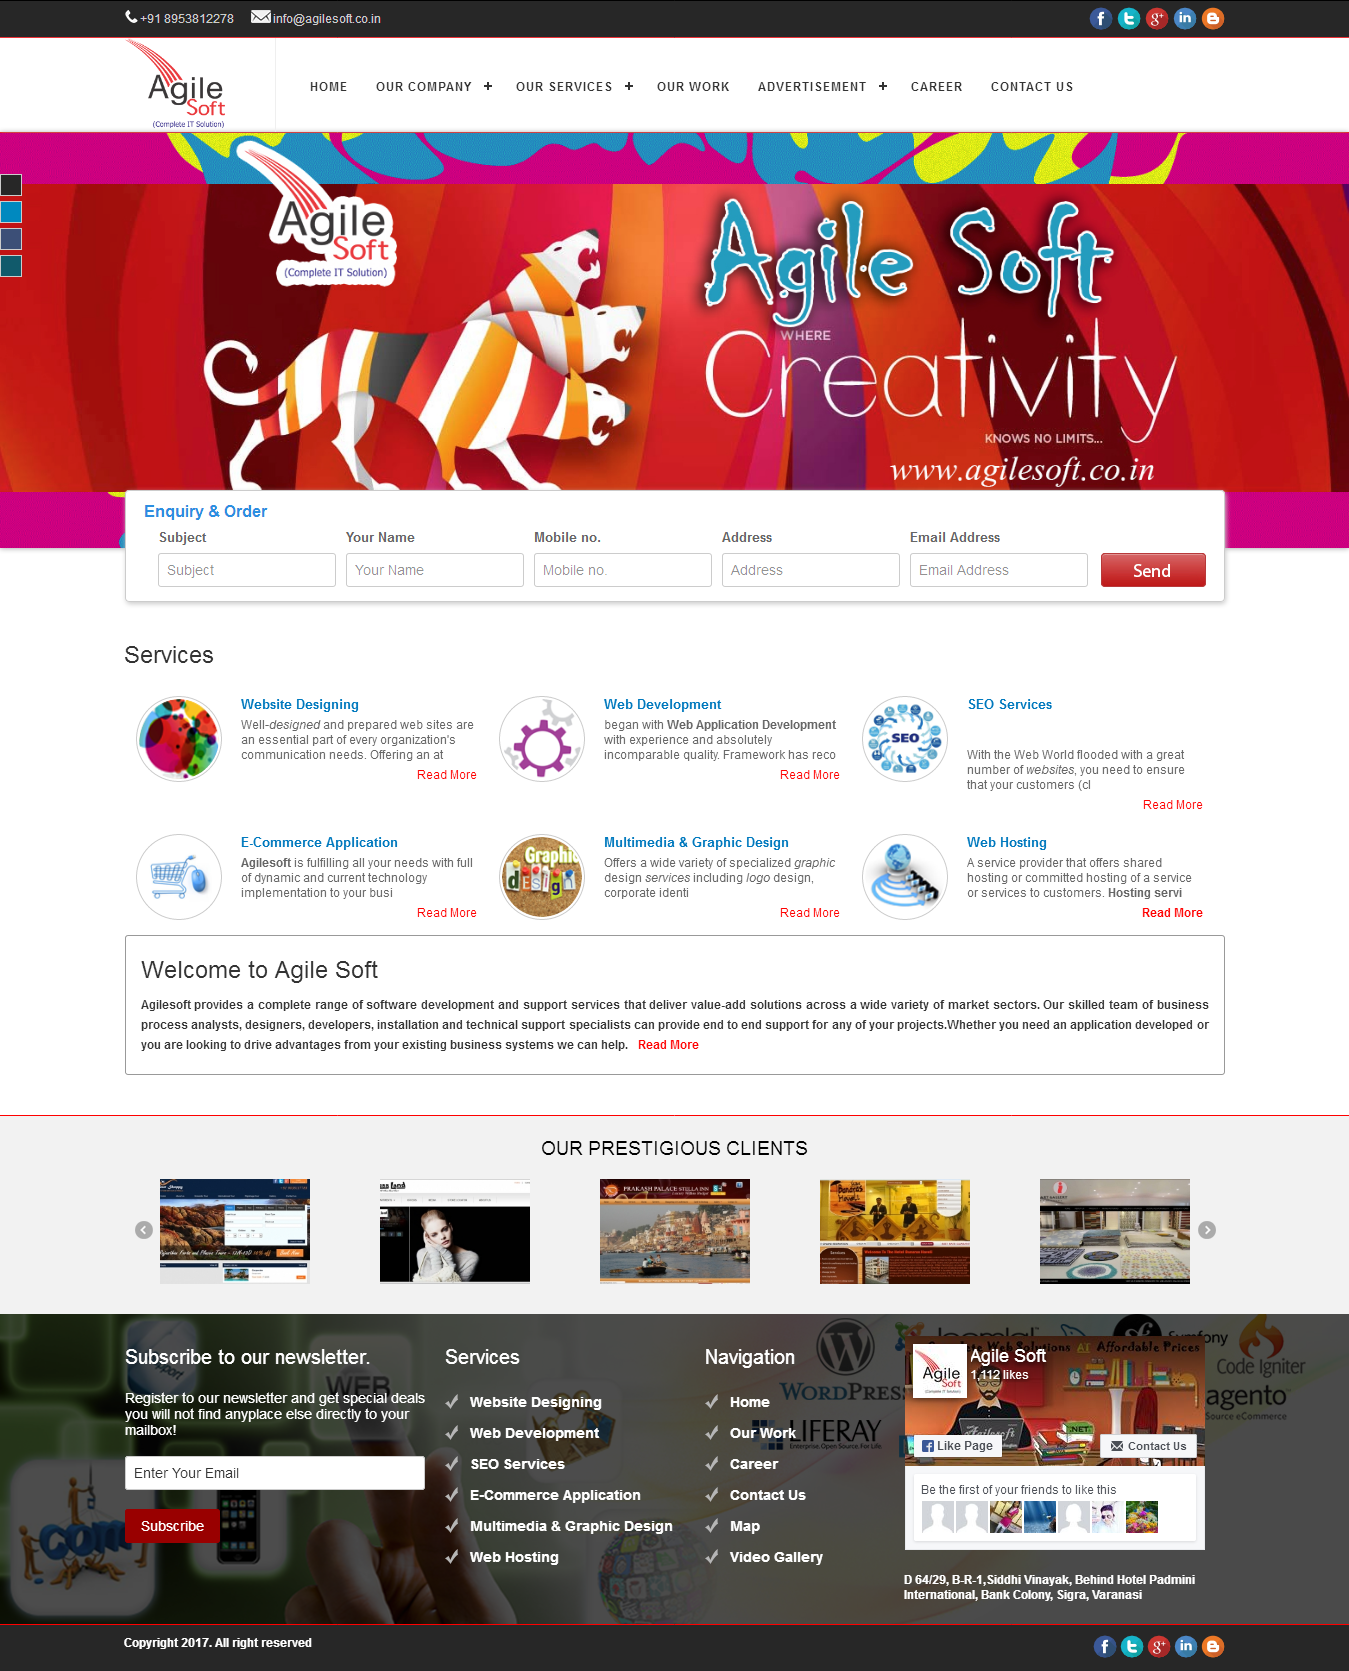 agilesoft #websites #software #development #company #web #mobile